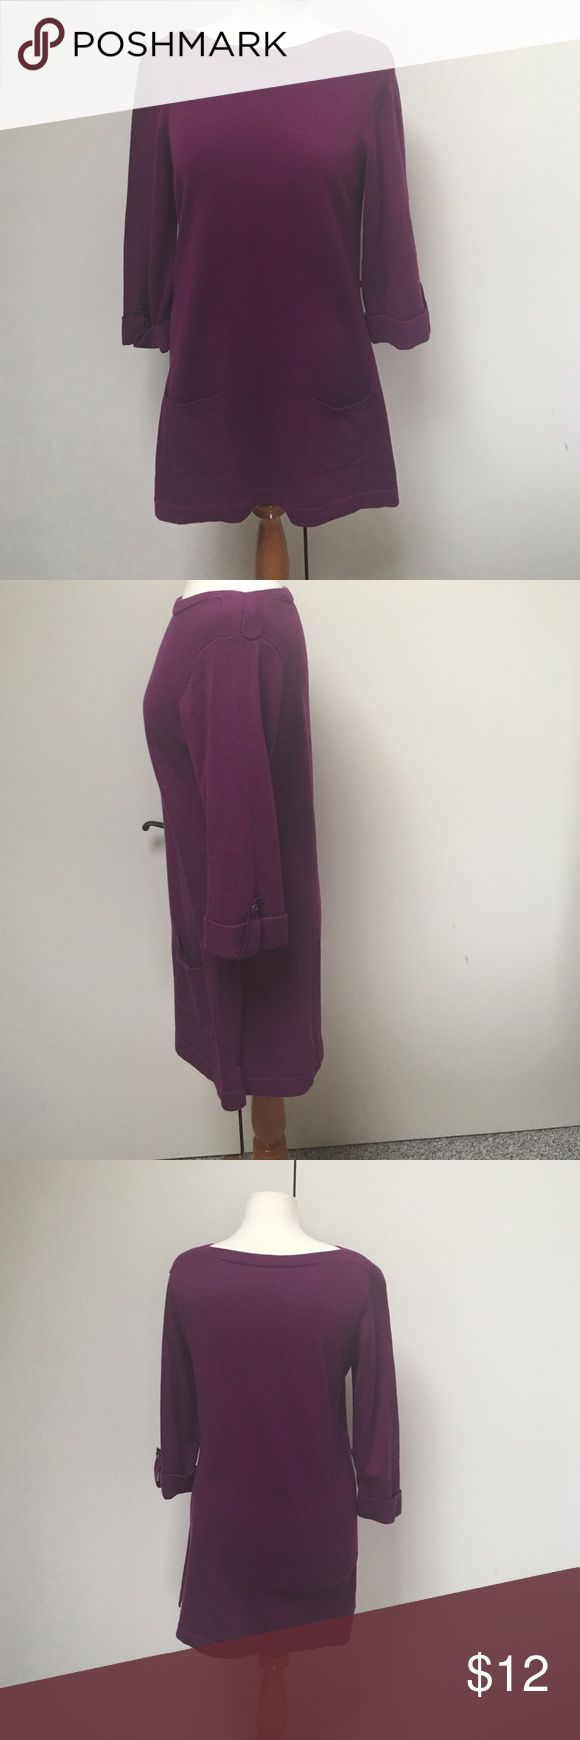 D&Co Tunic Top d & co Tunic.Royal looking purple color. 3/4 length sleeves and front pockets Hits below hips.Generous in size.Looks great with black leggings.Could also be as a dress for the right height person. D&Co Tops Tunics